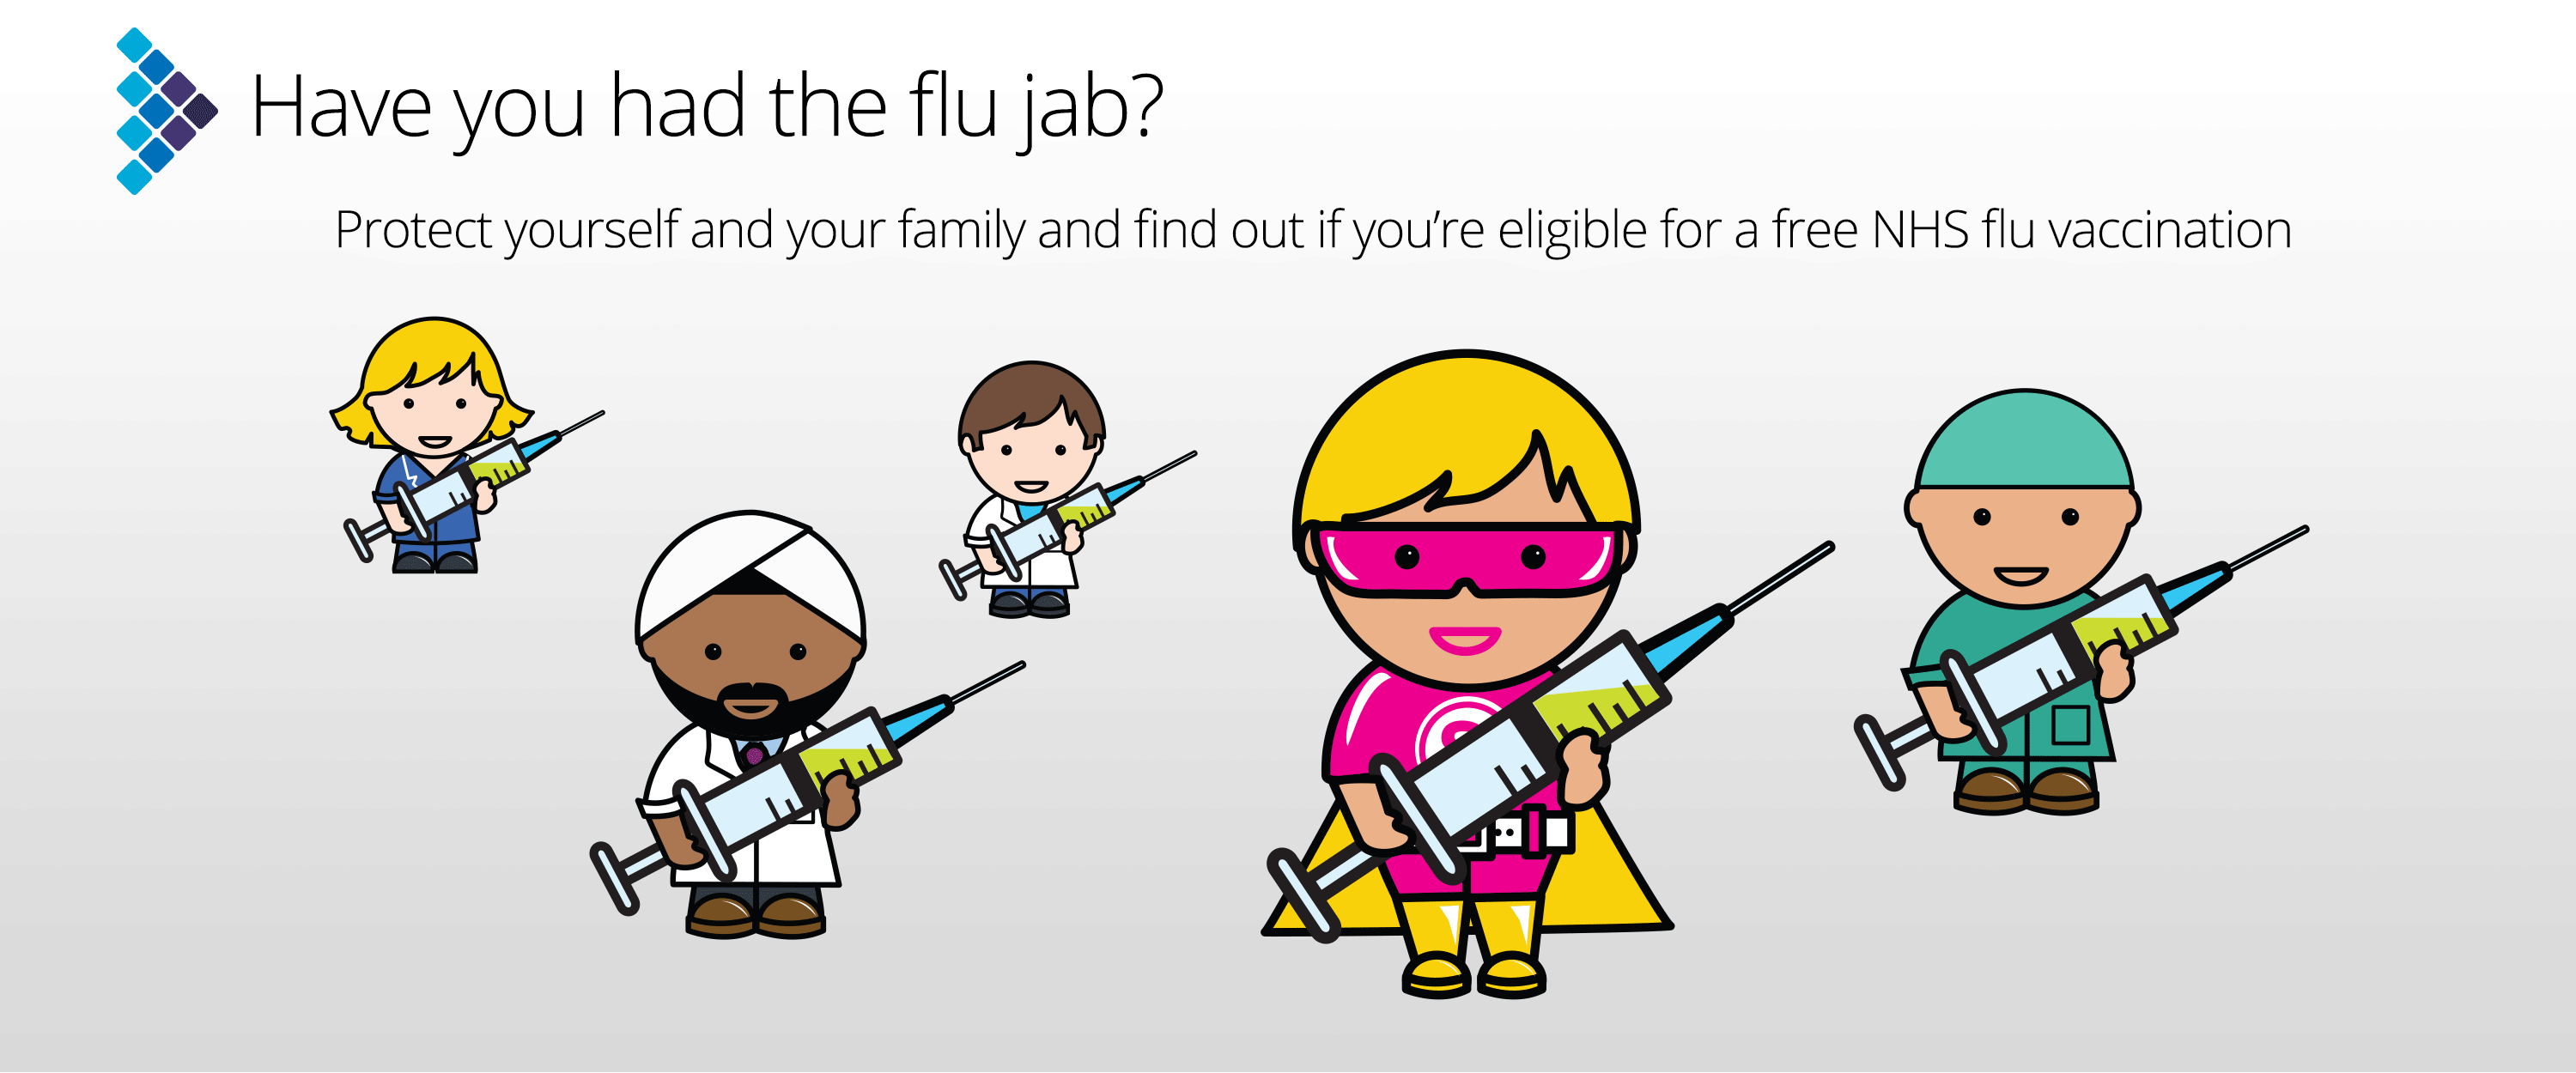 Keep you and your loved ones safe—get the flu jab